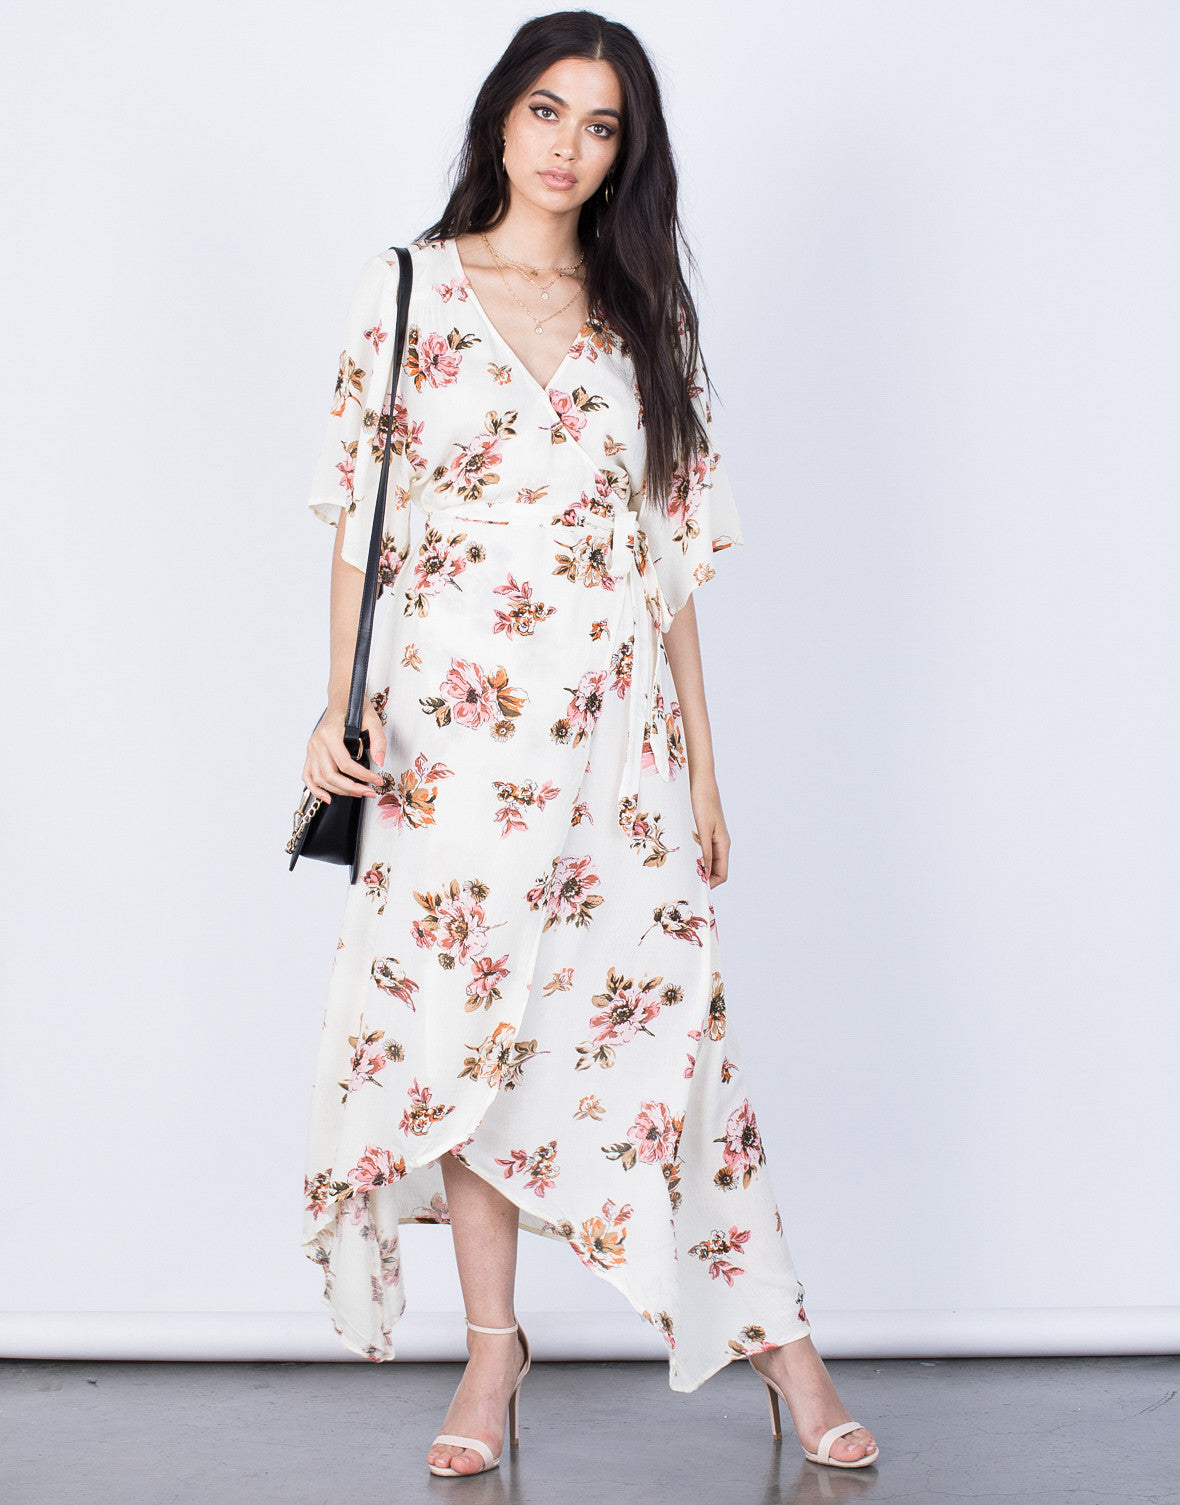 Fashion style Dresses floral for spring for woman